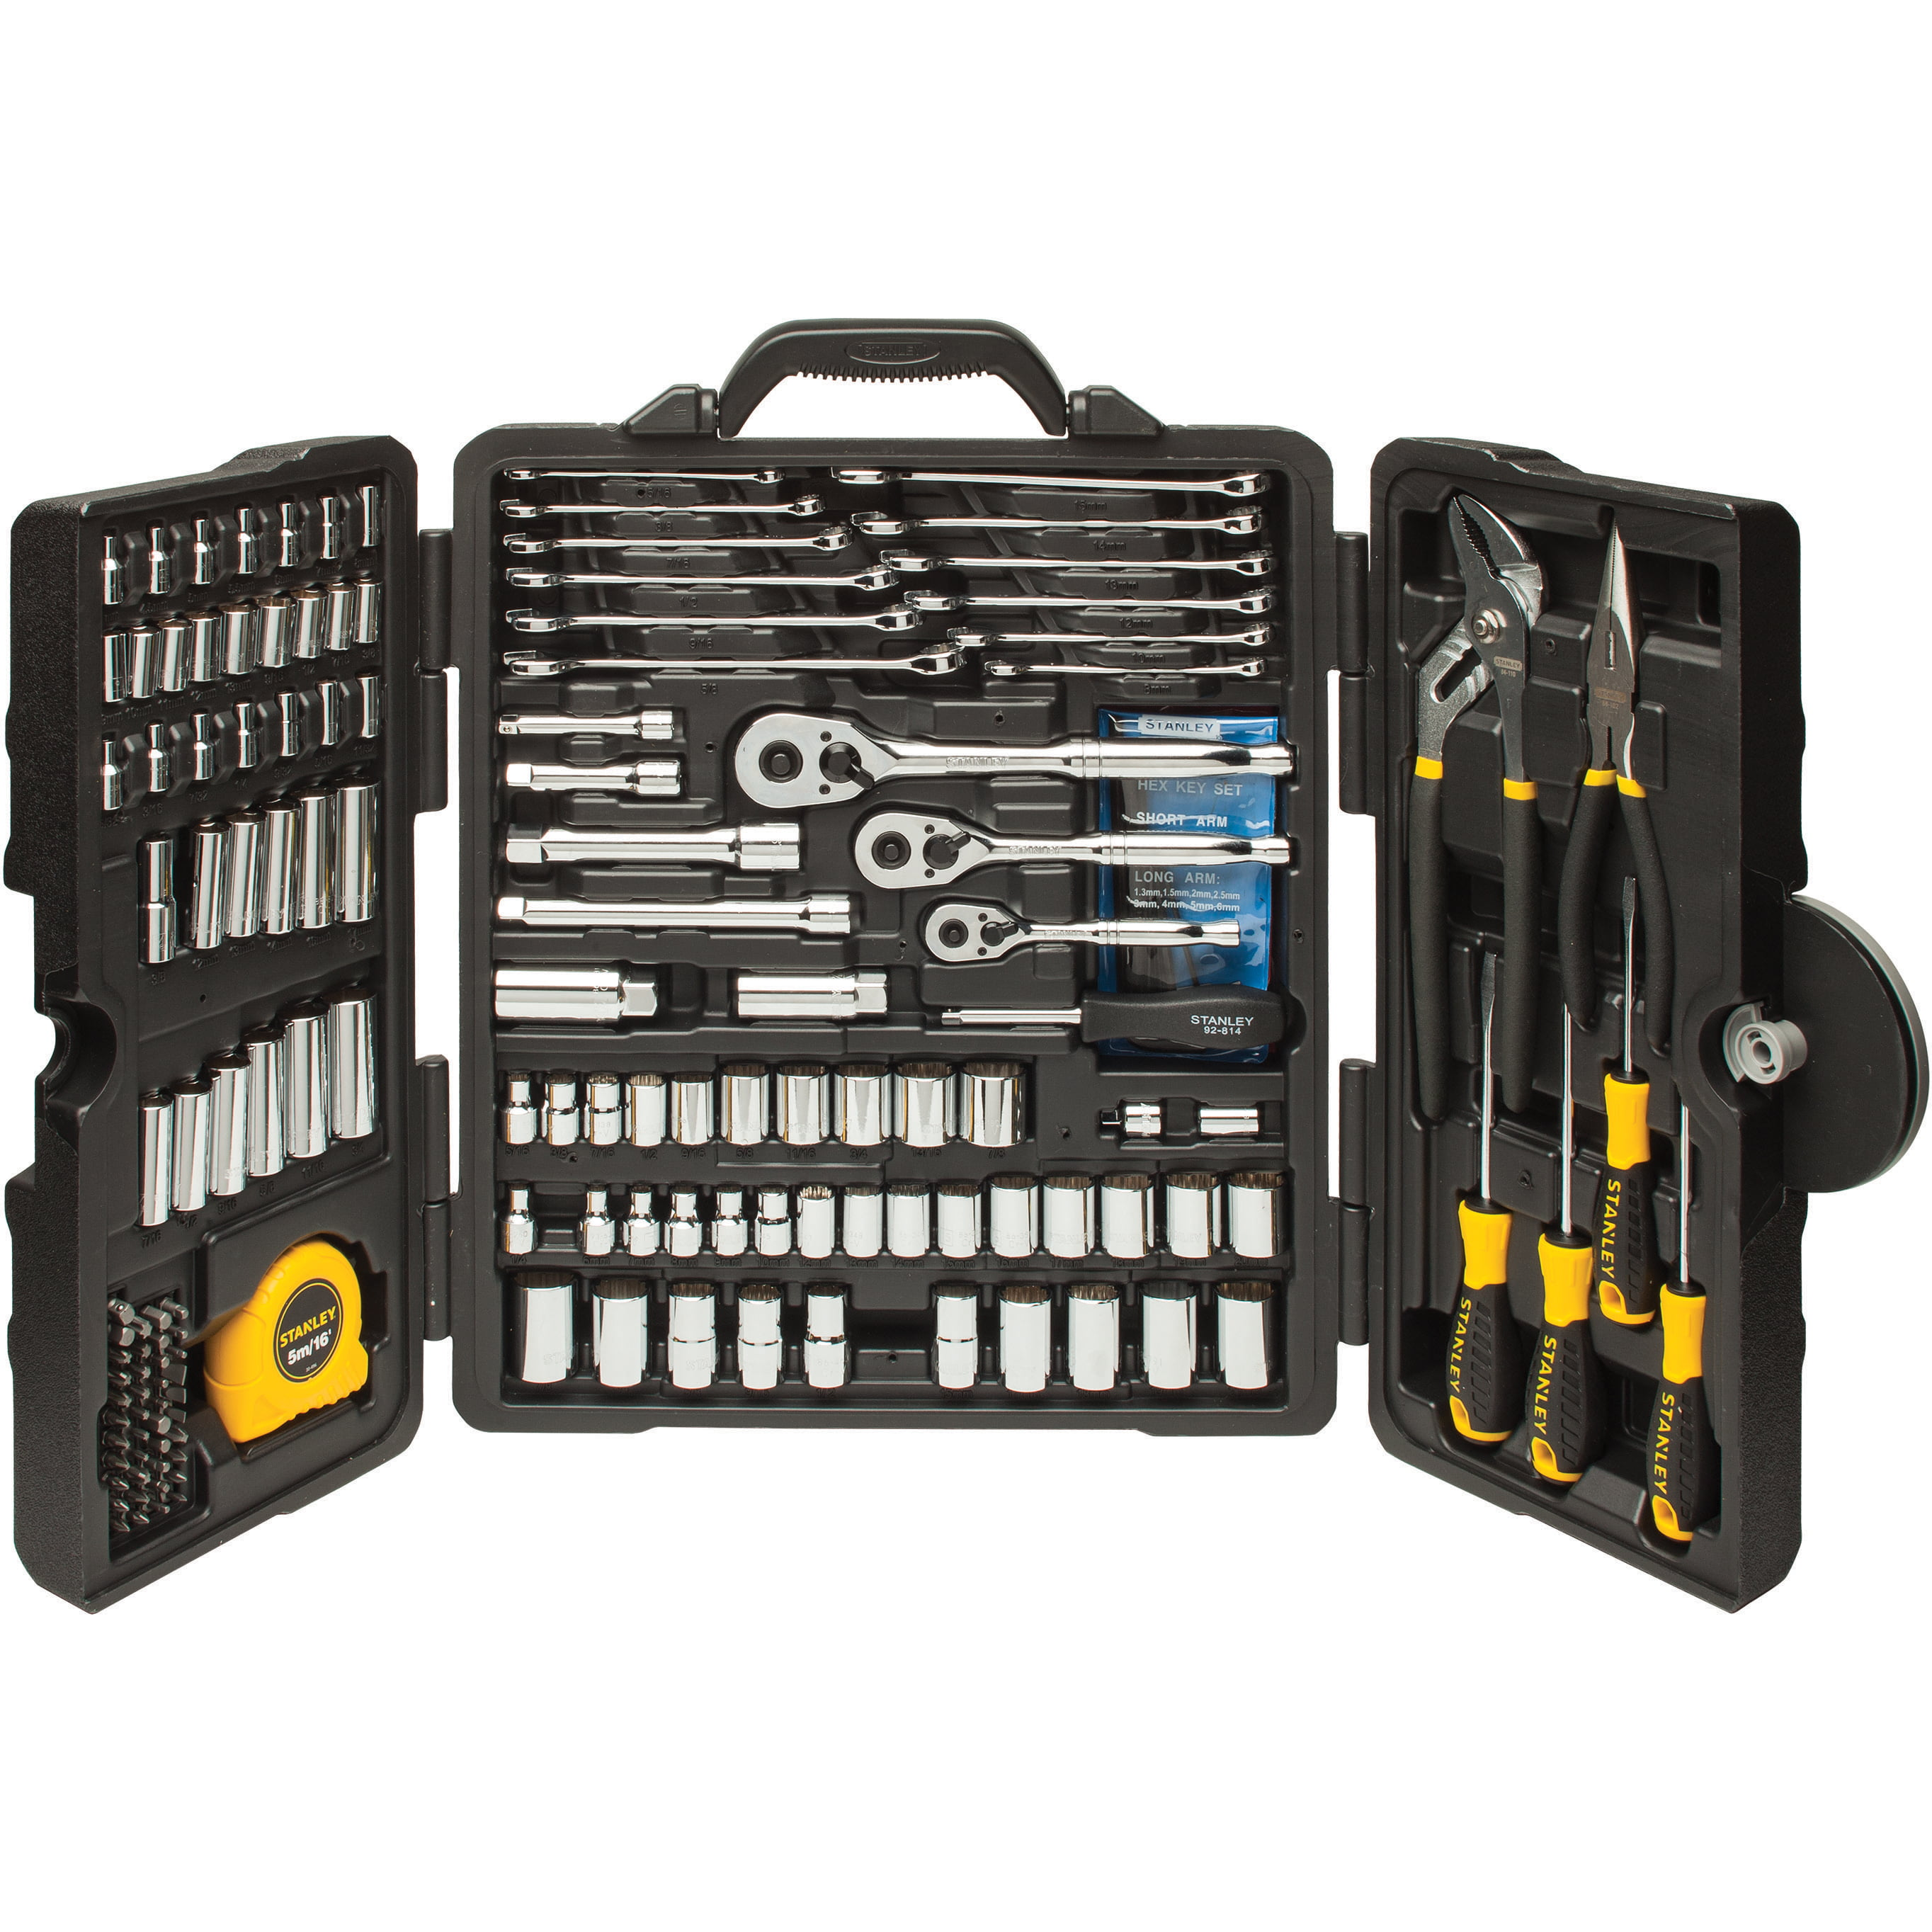 STANLEY STMT81031 170pc Mixed Tool Set by Stanley Black & Decker